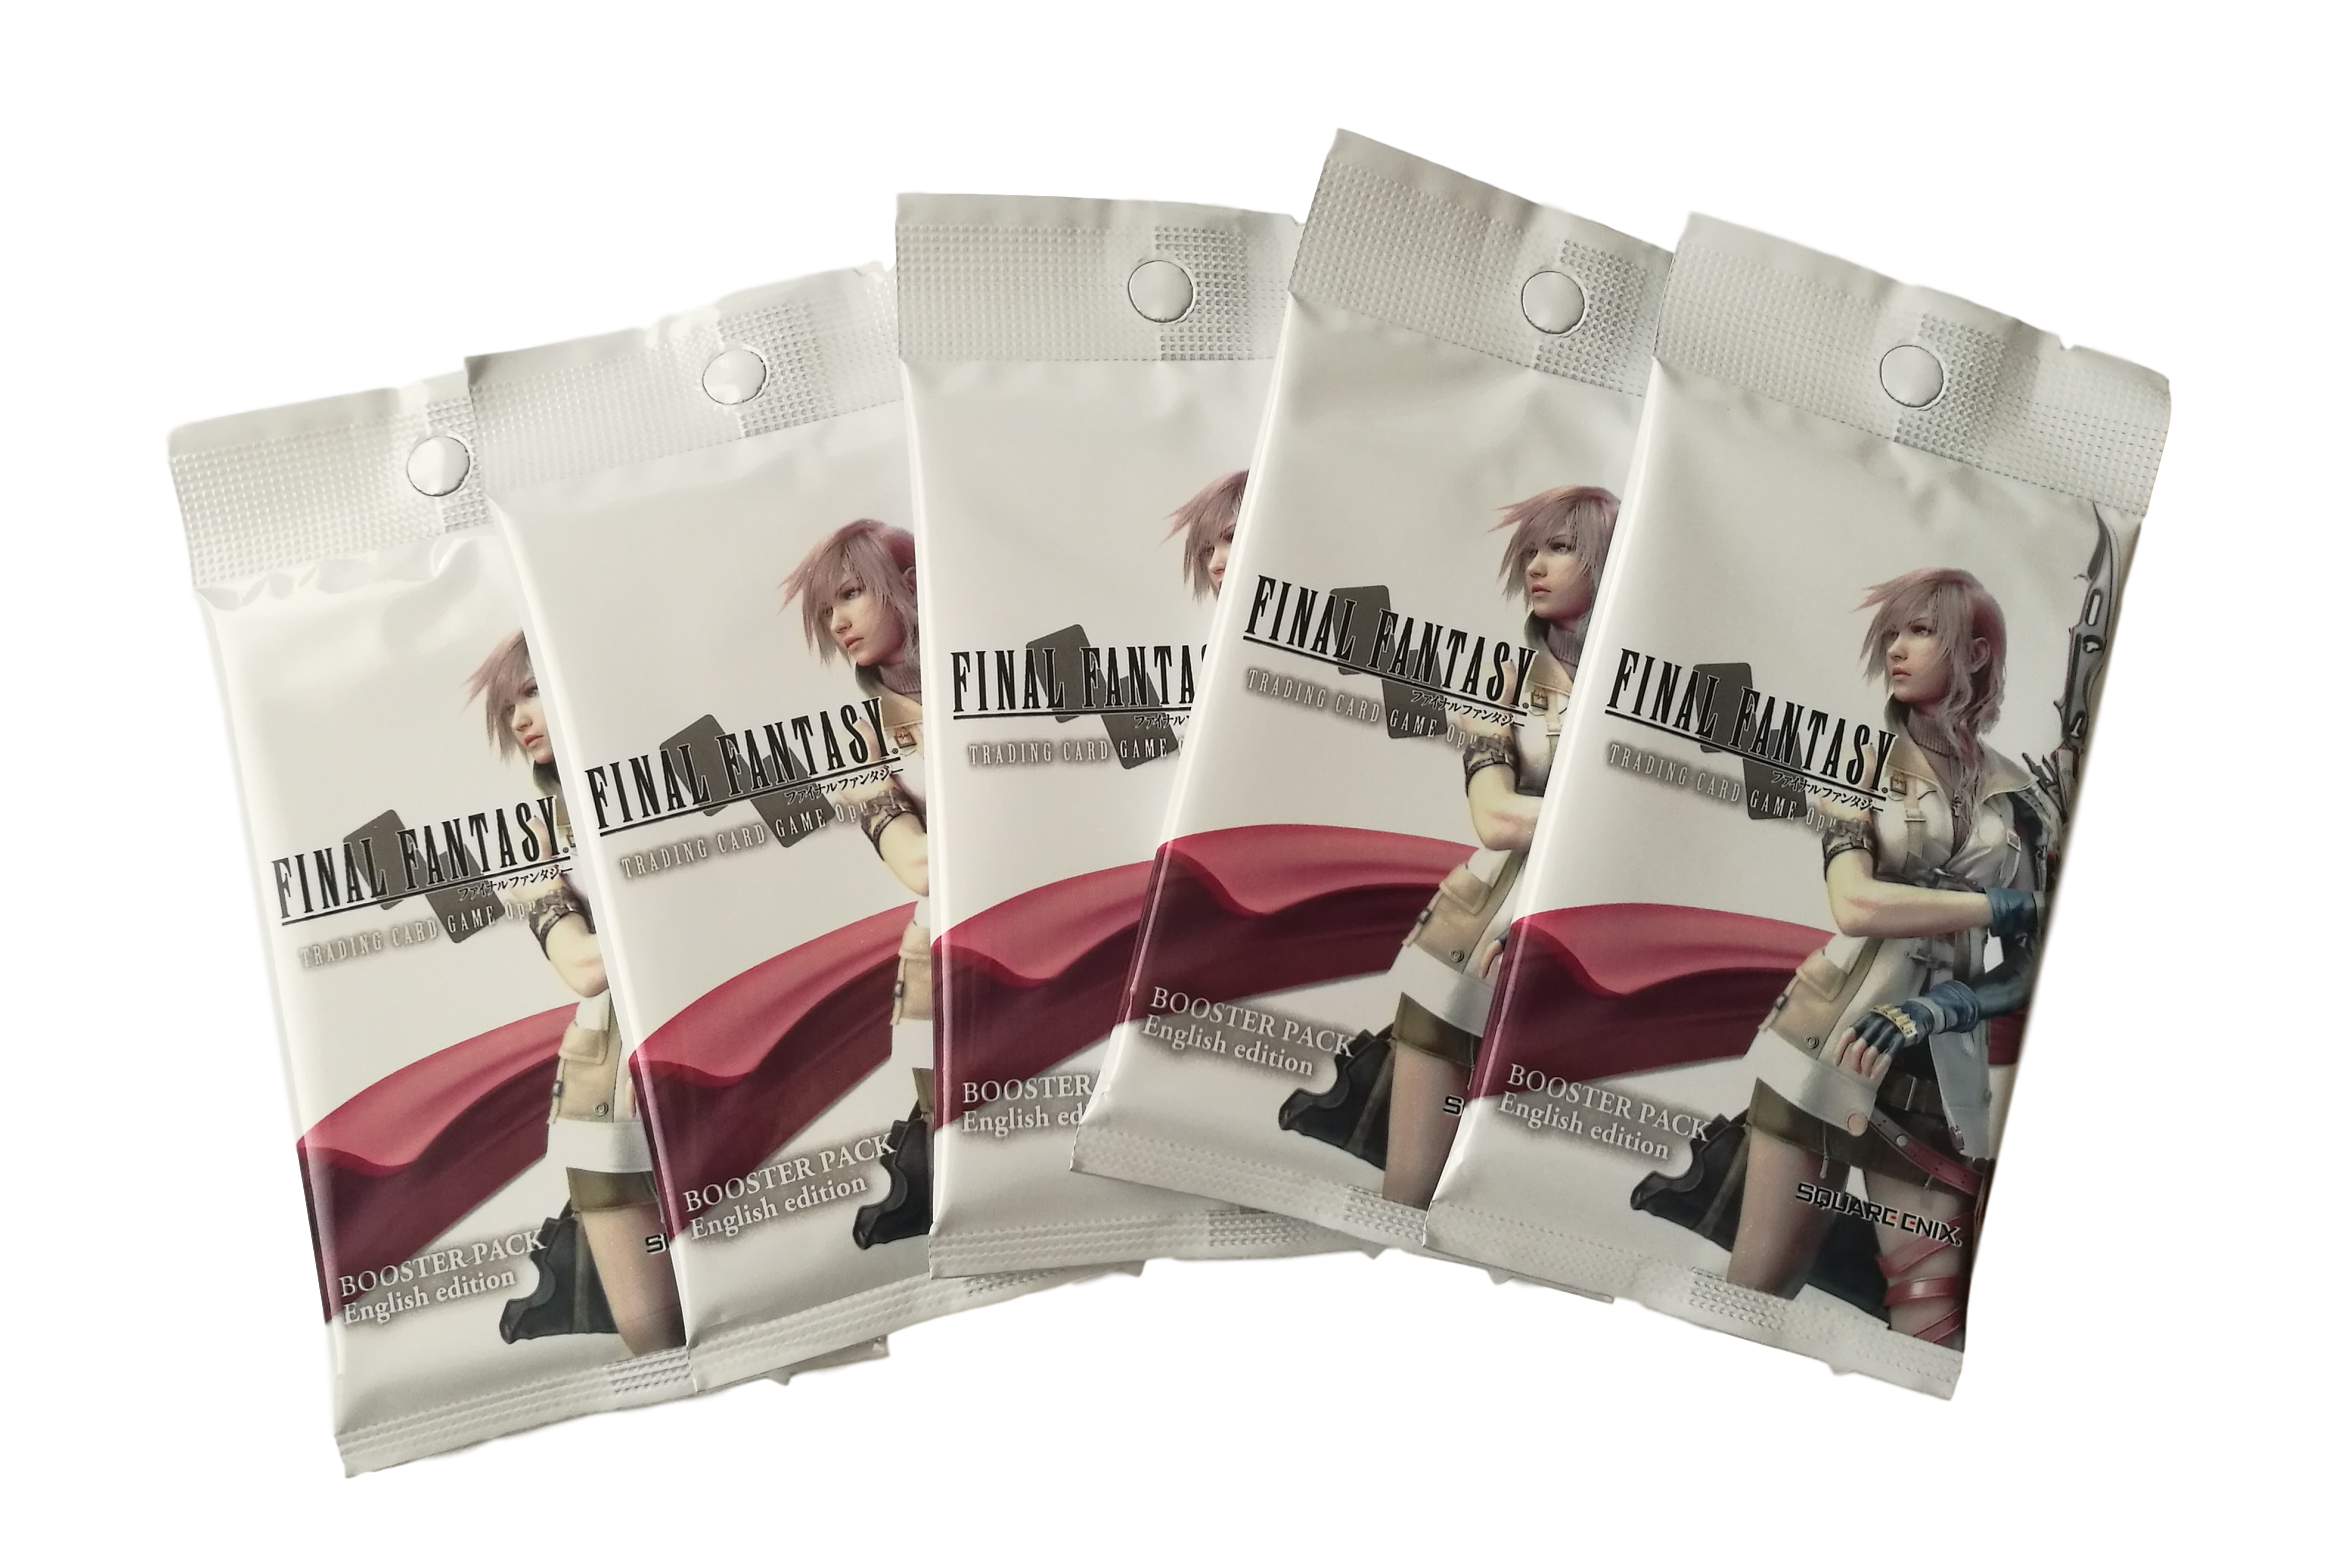 final-fantasy-opus-1-trading-card-booster-packs-x5-782-1-p.png